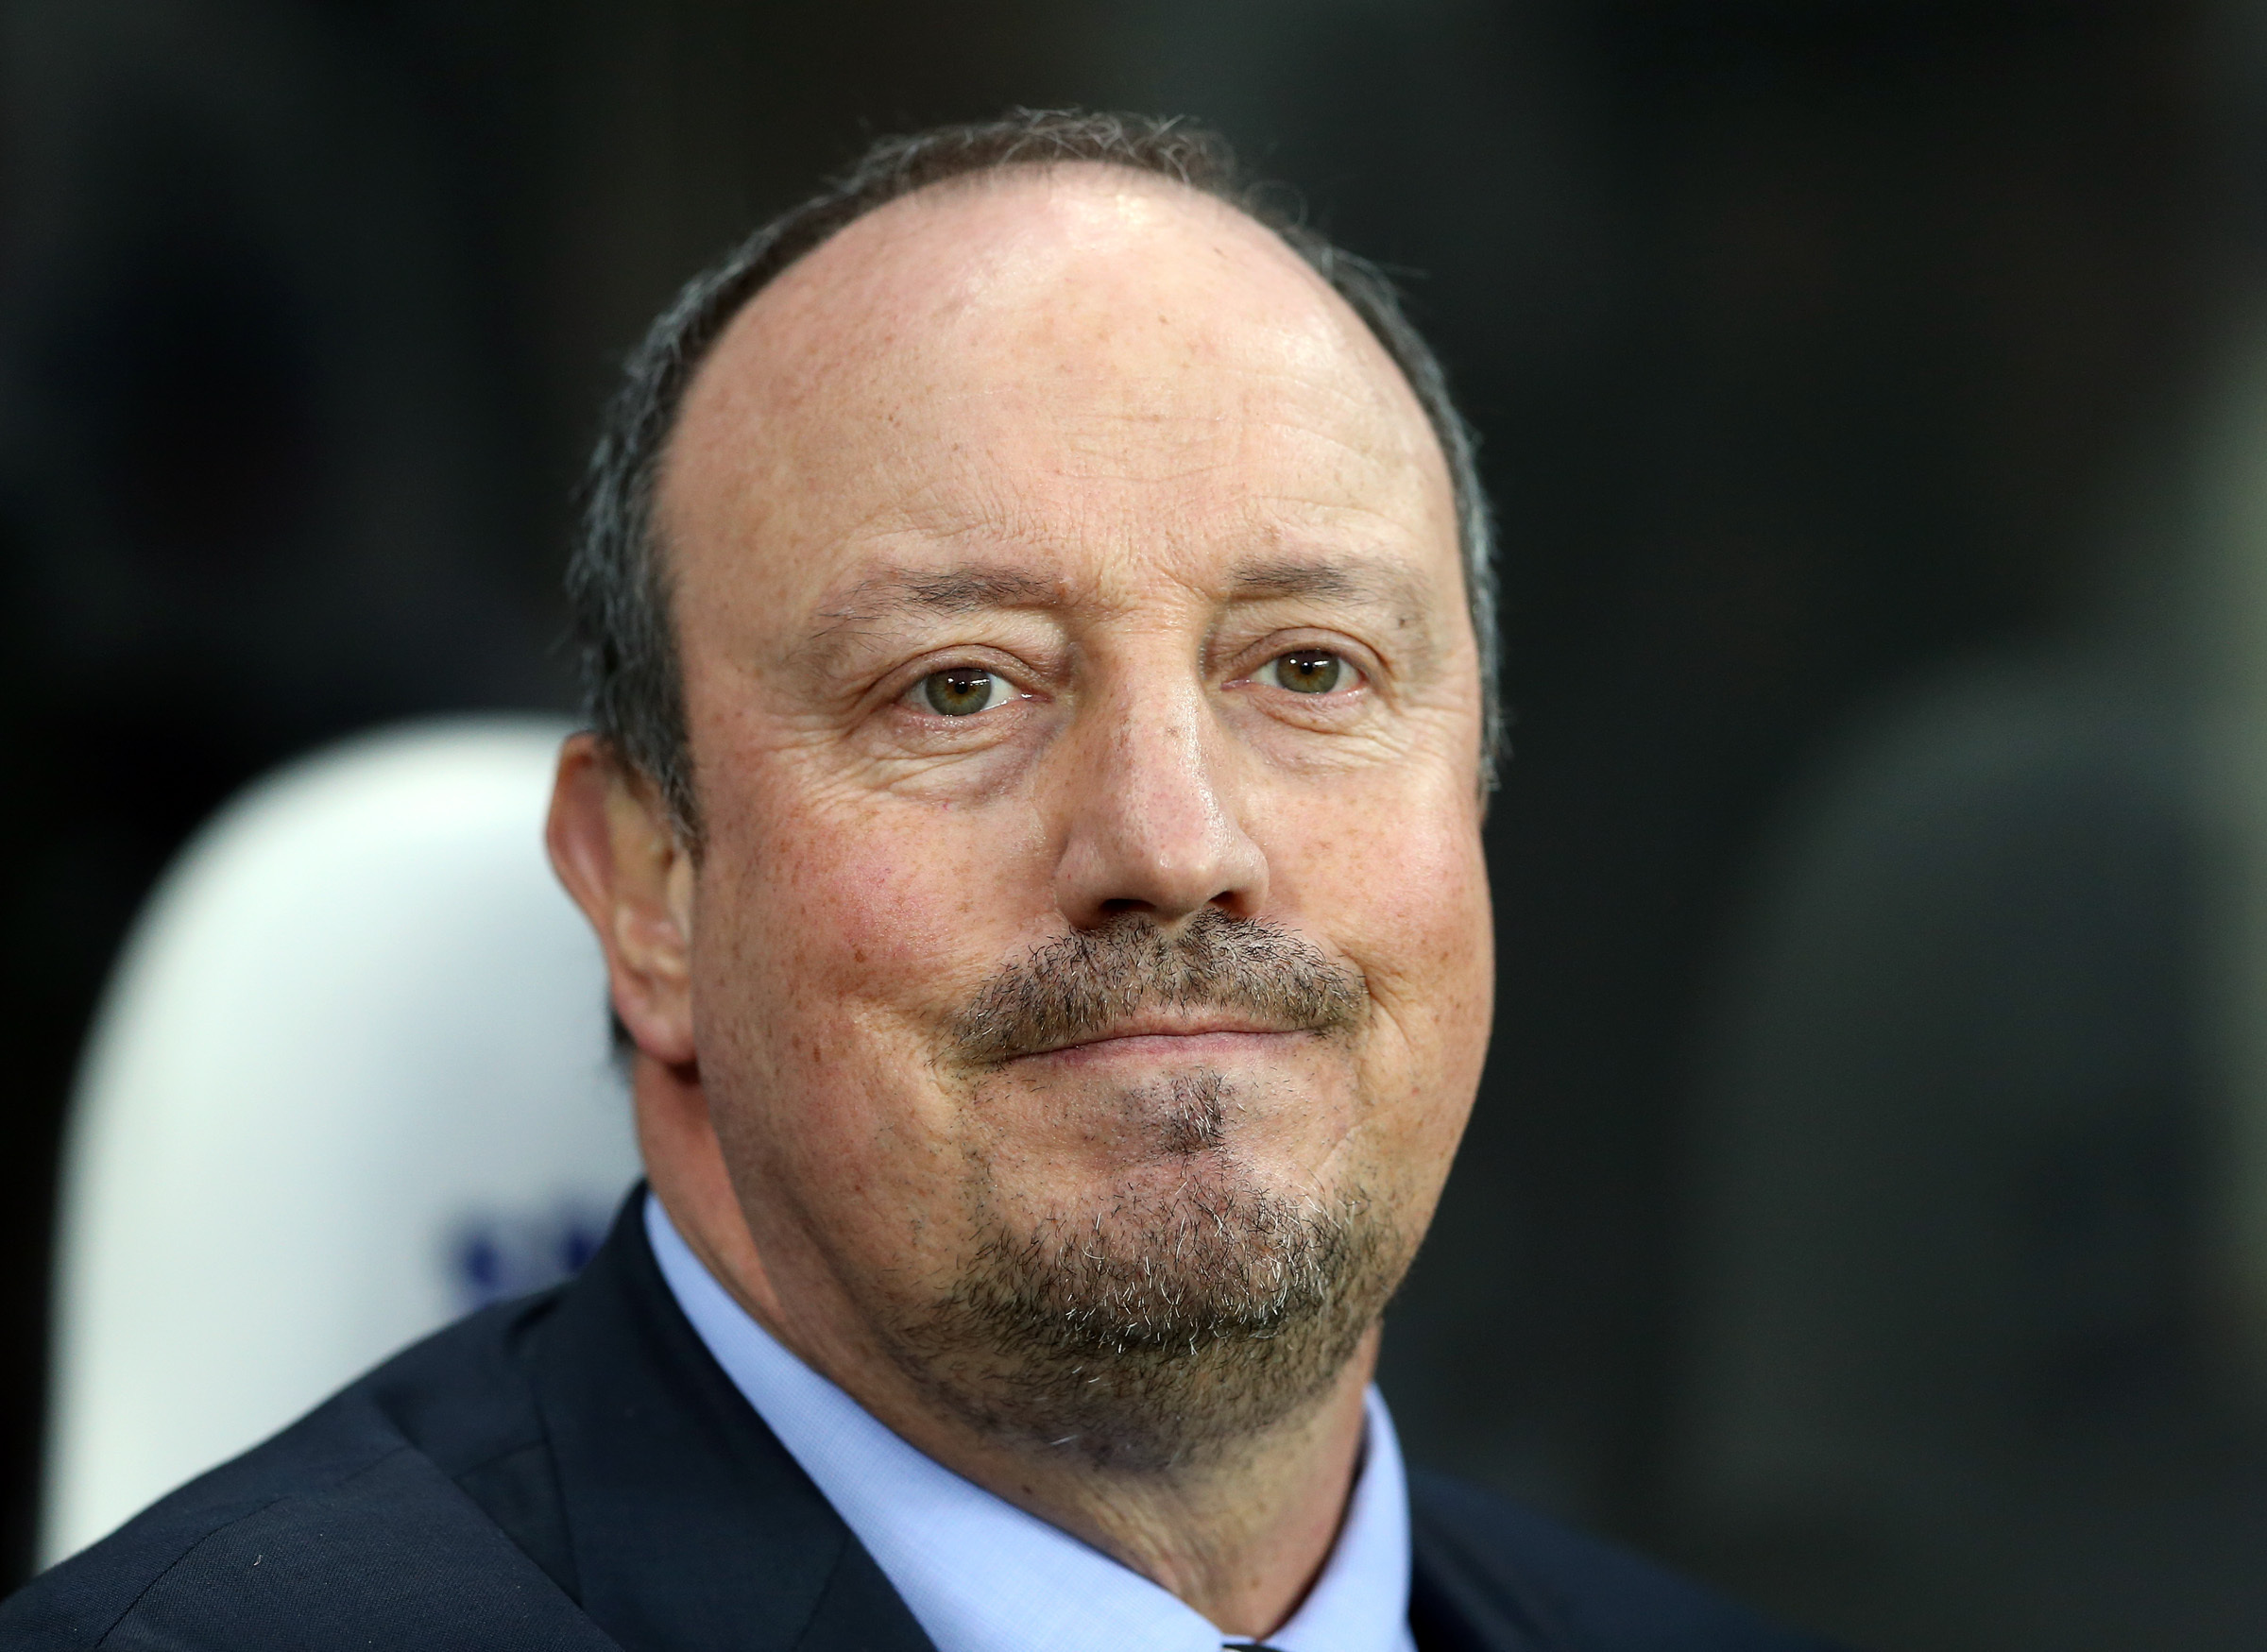 Newcastle United manager Rafael Benitez - has he given up? Picture: PA